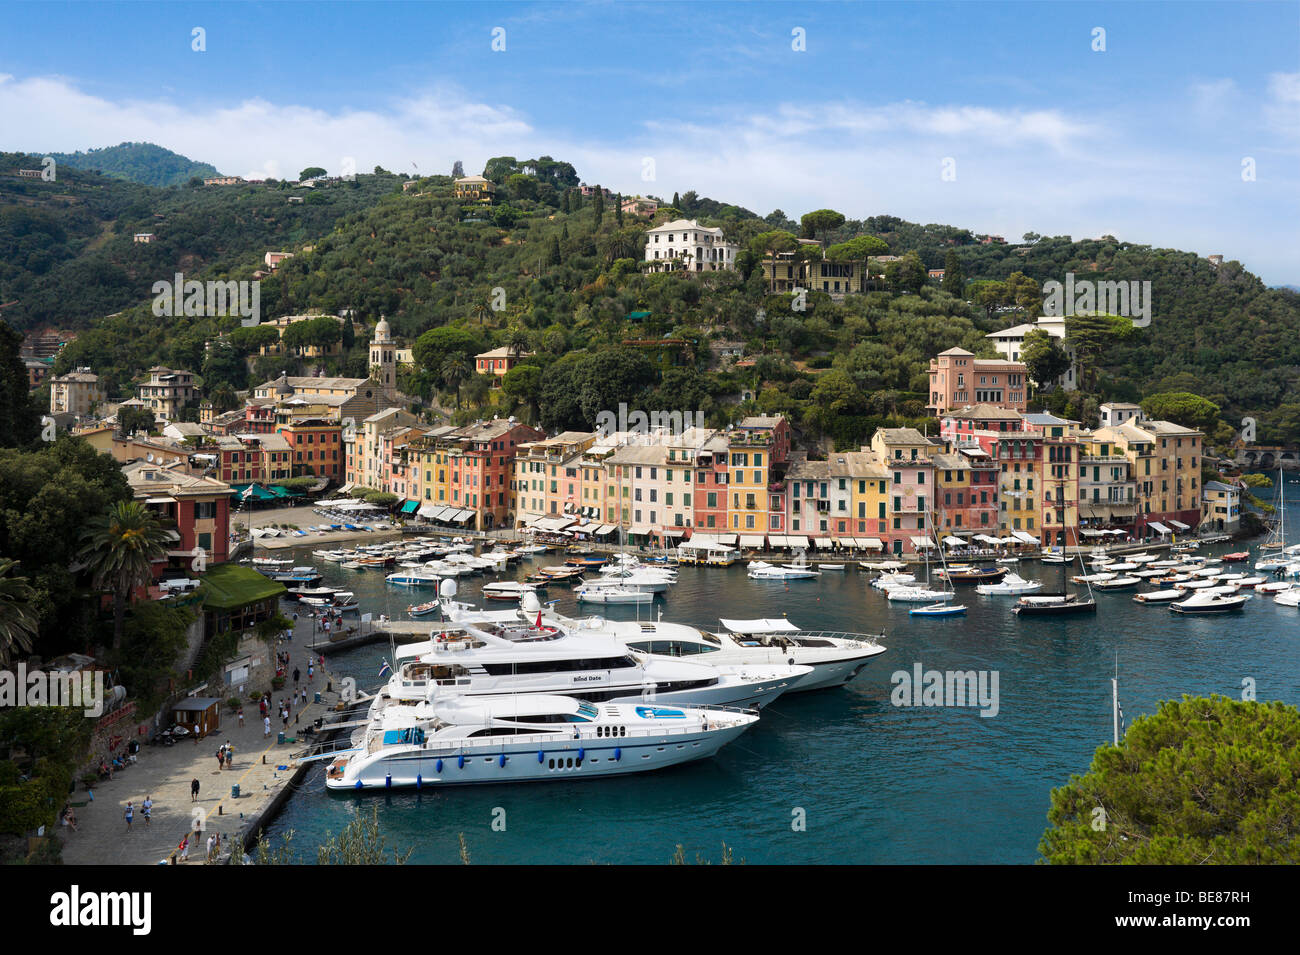 Luxury yachts in the harbour at Portofino with the town behind, Italian Riviera, Liguria, Italy - Stock Image